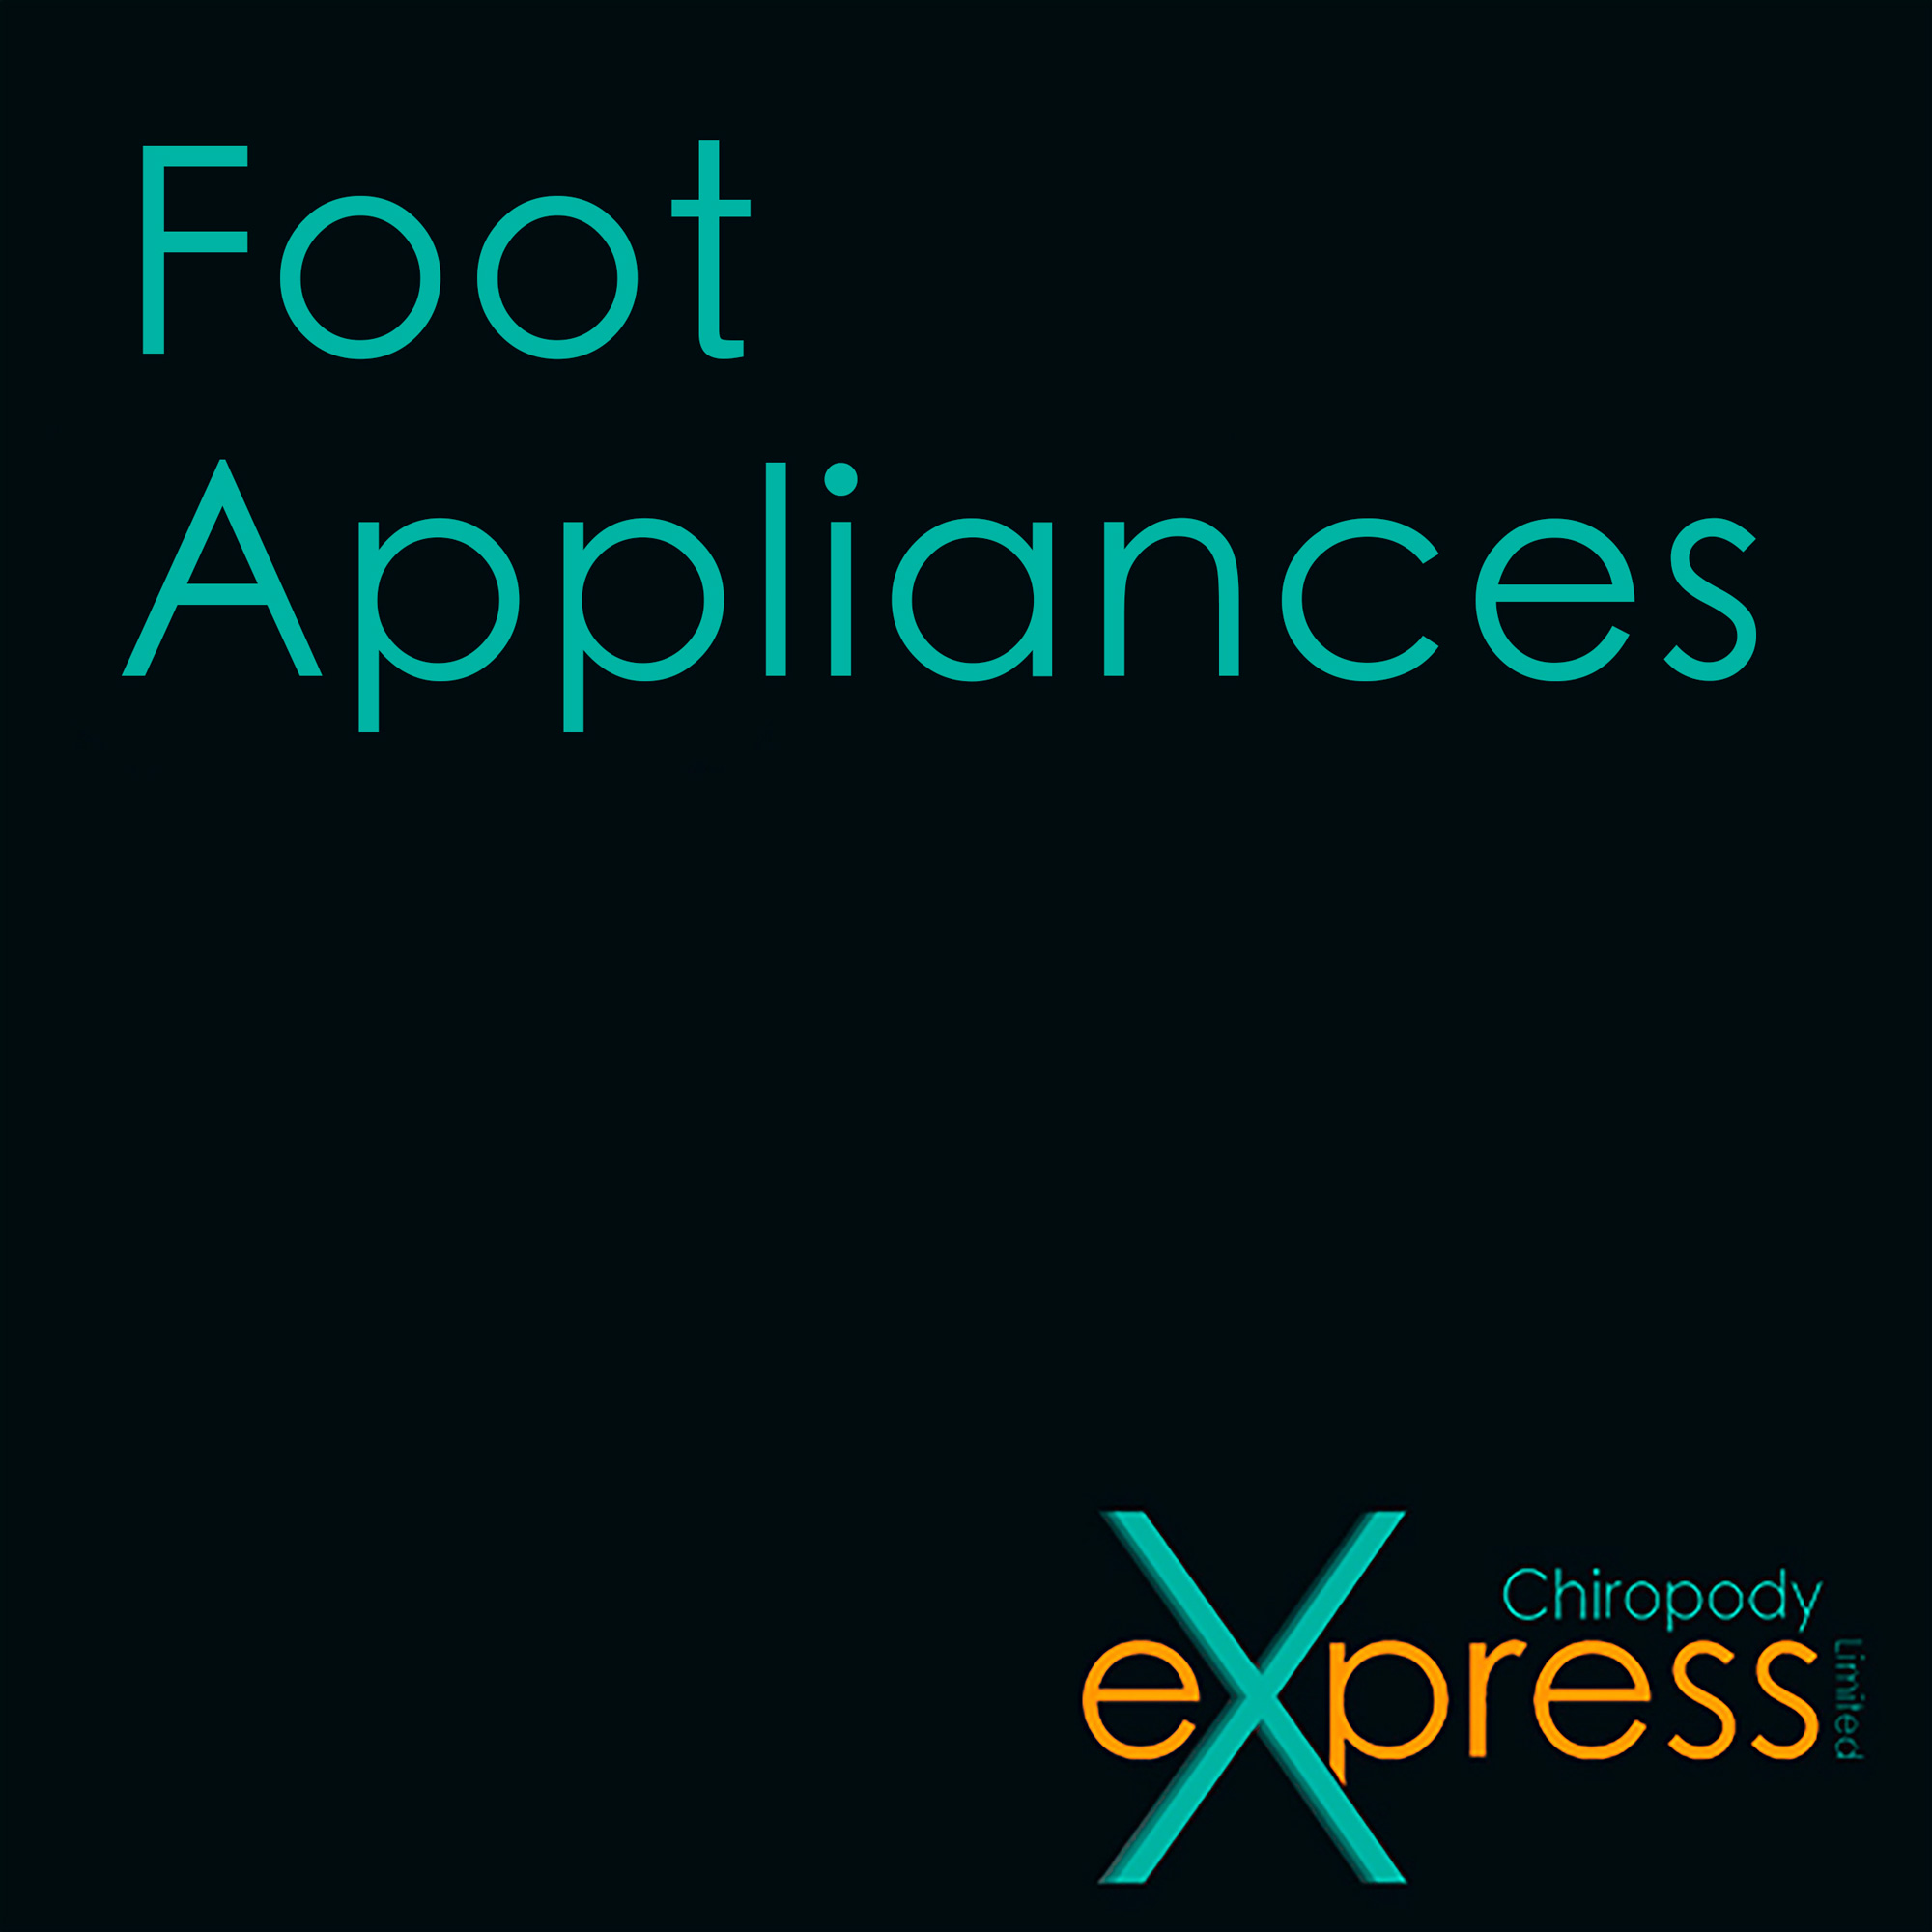 Foot Appliances